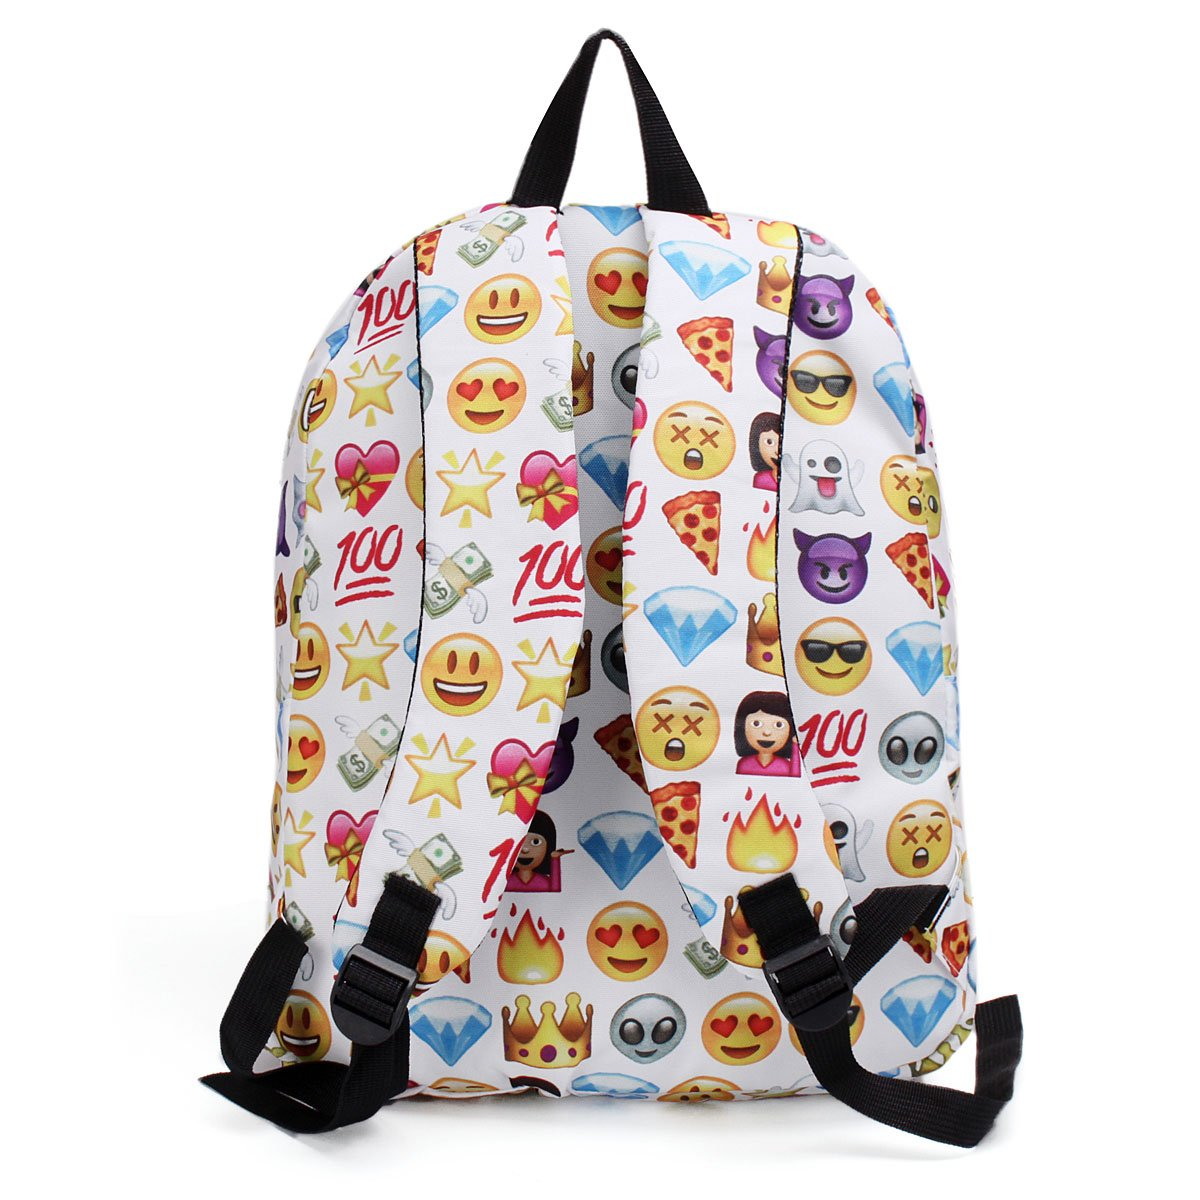 Jeteven Cute Backpack School Book Backpack Shoulder Bag Schoolbag for Girls Boys